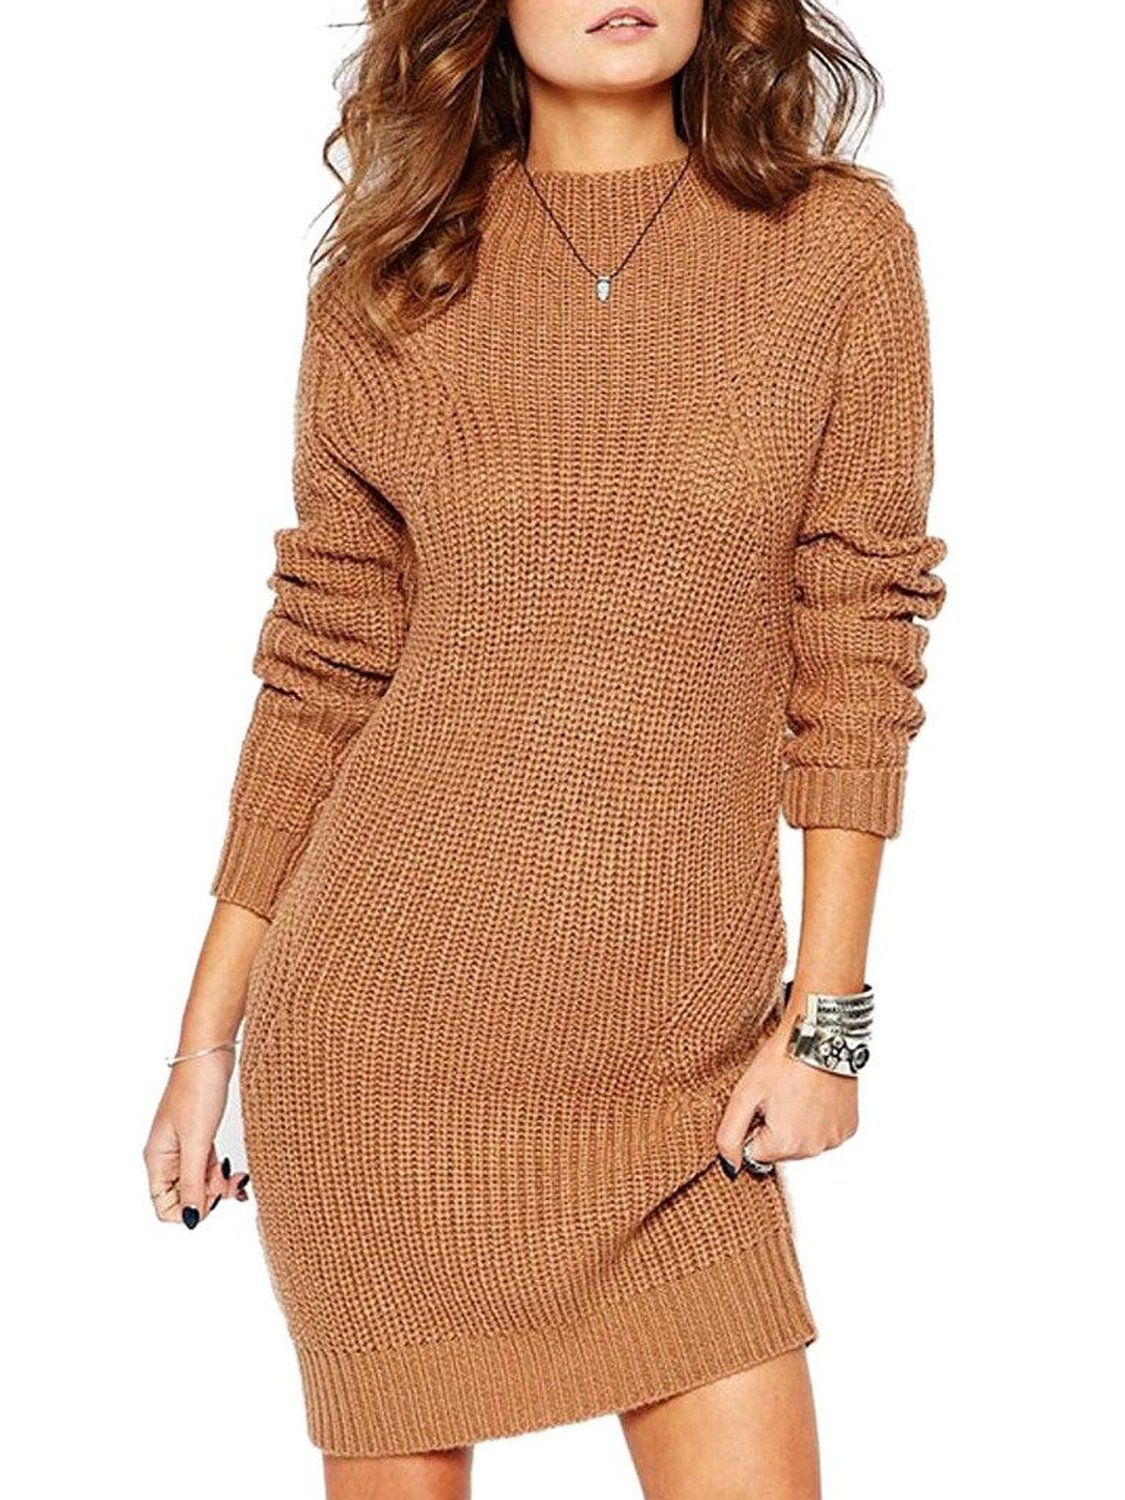 55b1bbb6834 Choies Women s Brown High Neck Cable Chunky Knit Sweater Dress at Amazon  Women s Clothing store